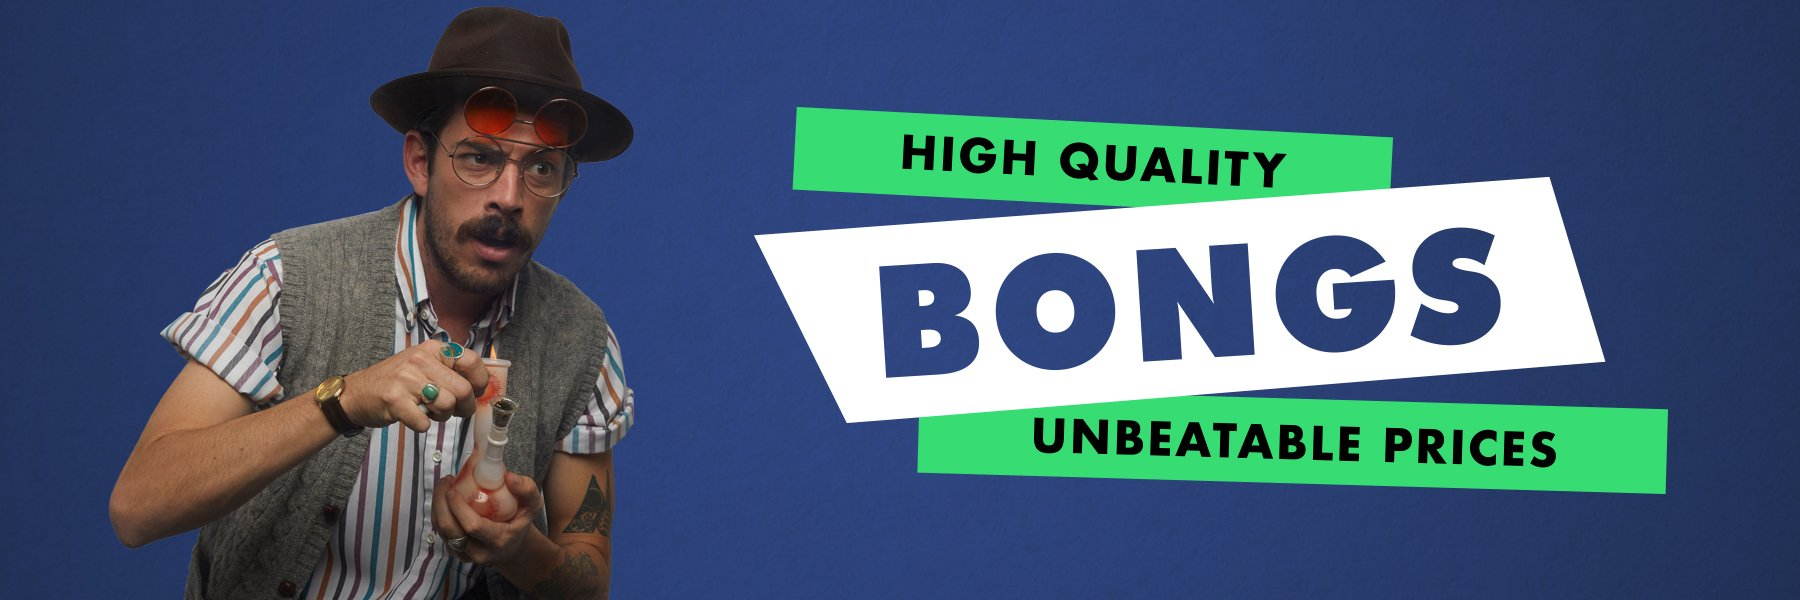 Huge Bongs - Giant and big bongs for seasoned smokers